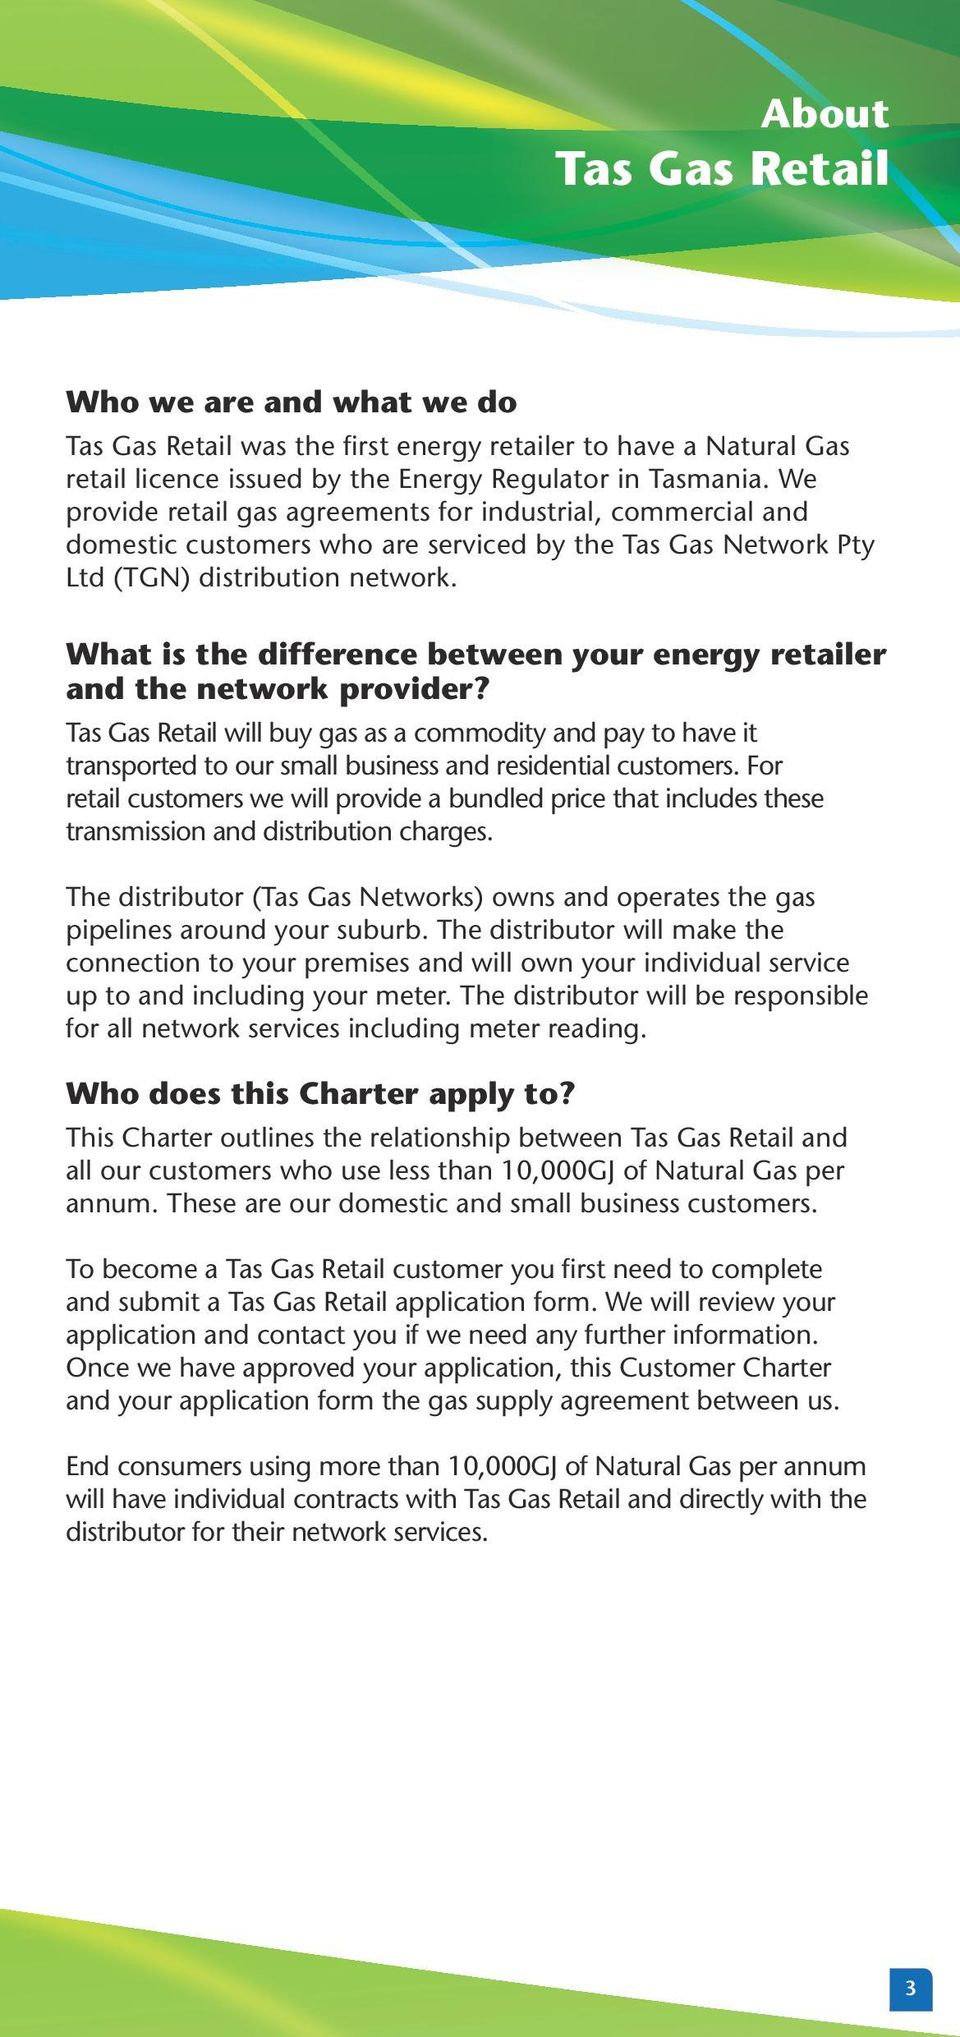 What is the difference between your energy retailer and the network provider? Tas Gas Retail will buy gas as a commodity and pay to have it transported to our small business and residential customers.